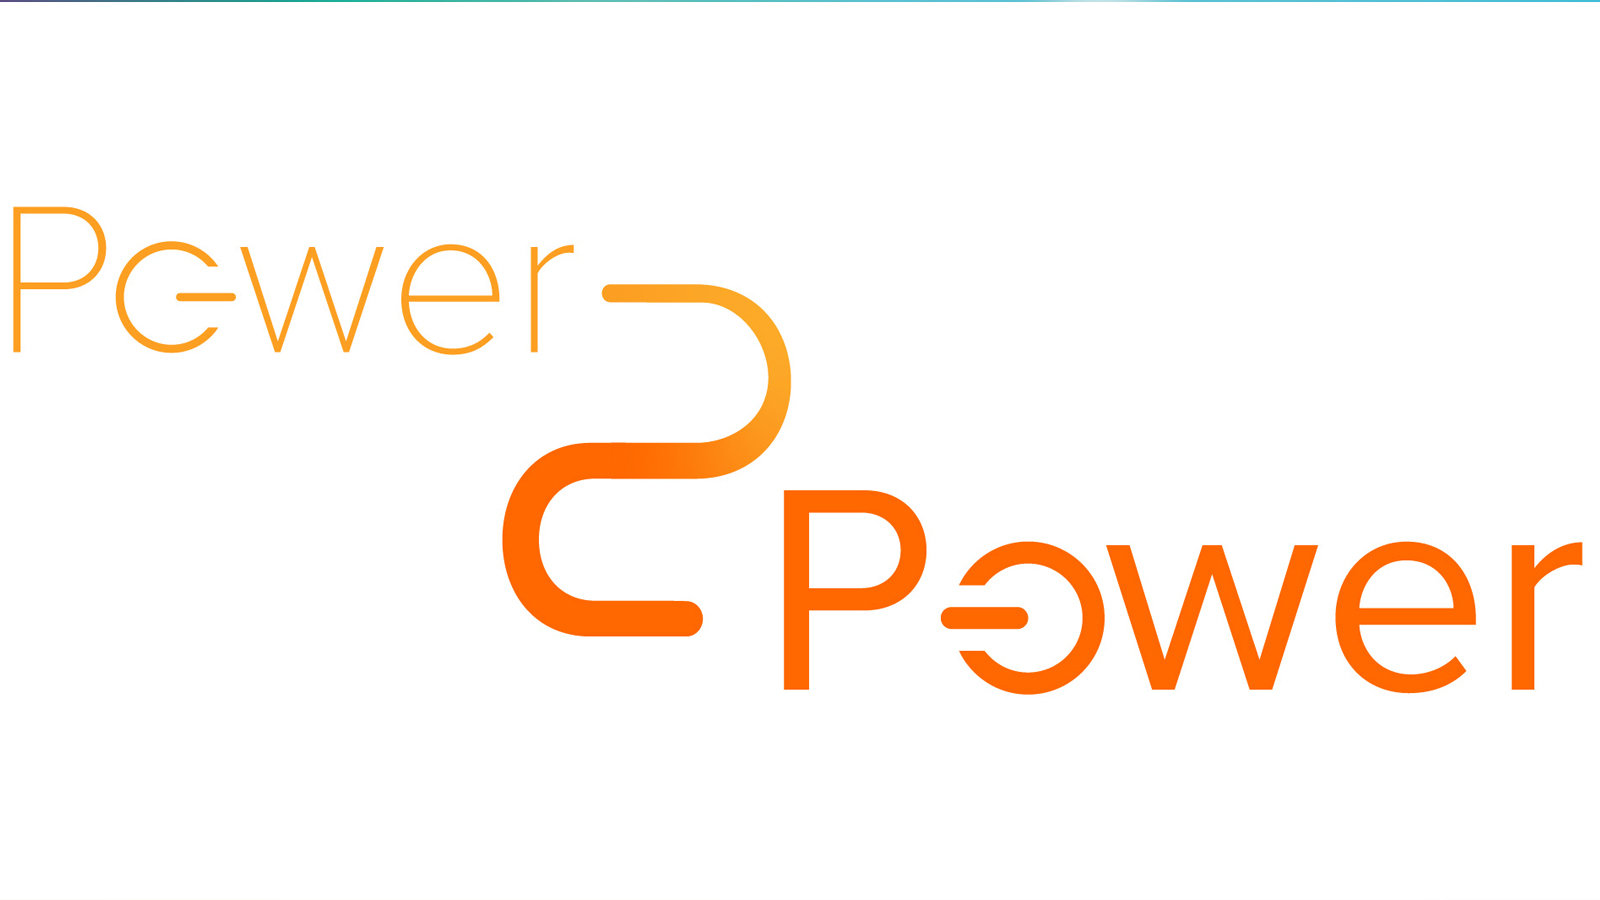 """Power2Power"" logo in curved letters."